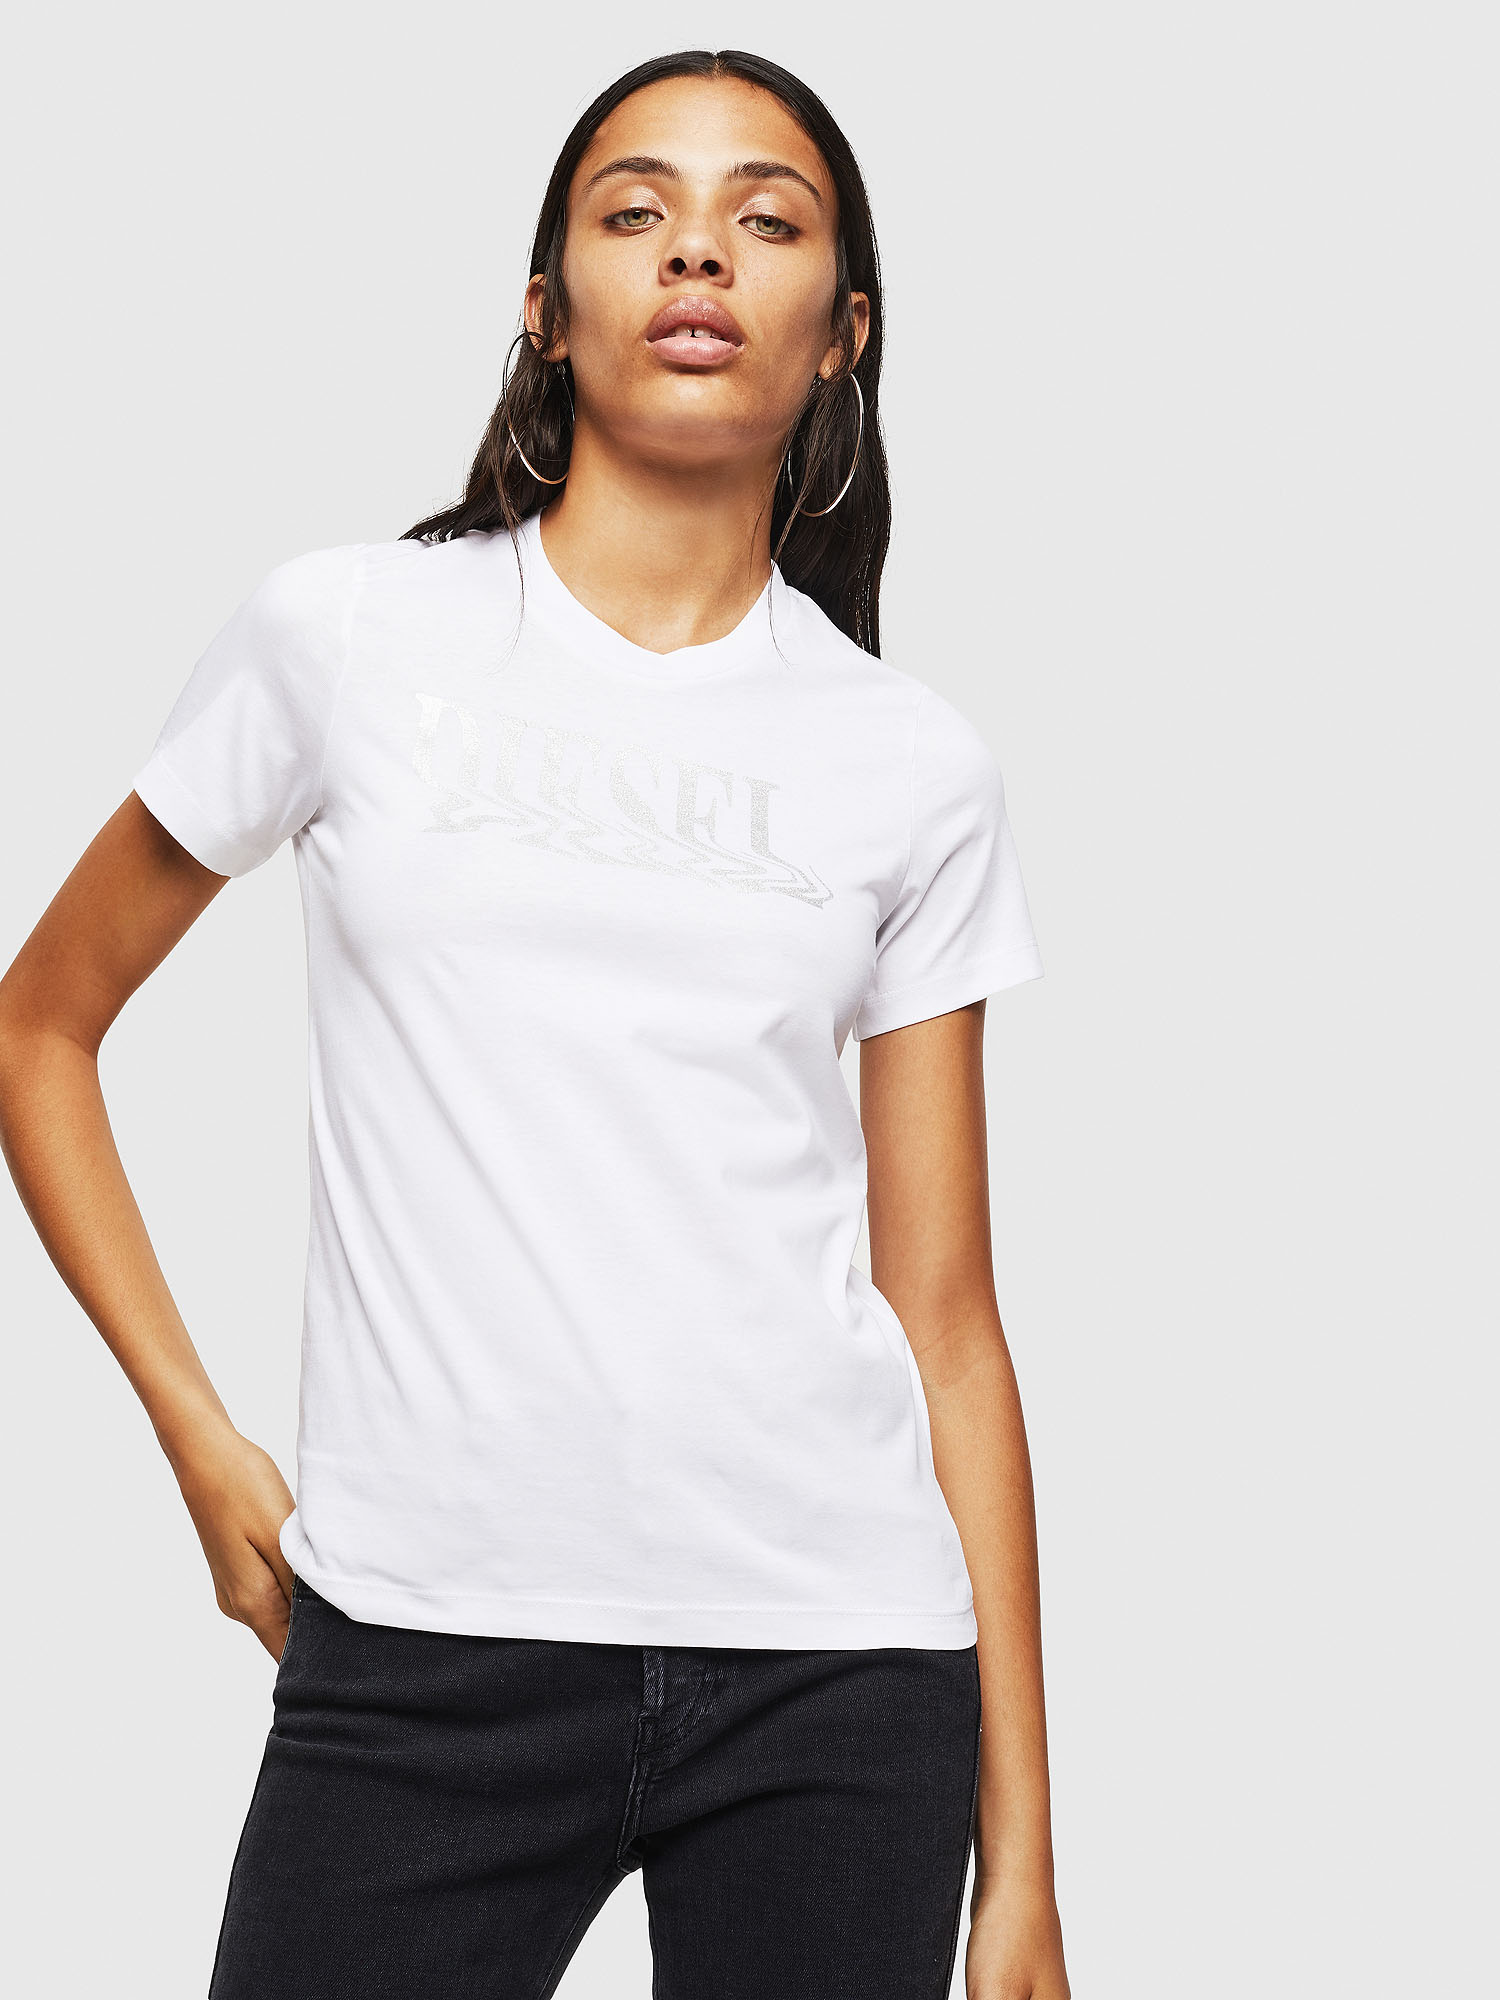 Diesel - T-SILY-WN,  - T-Shirts - Image 1